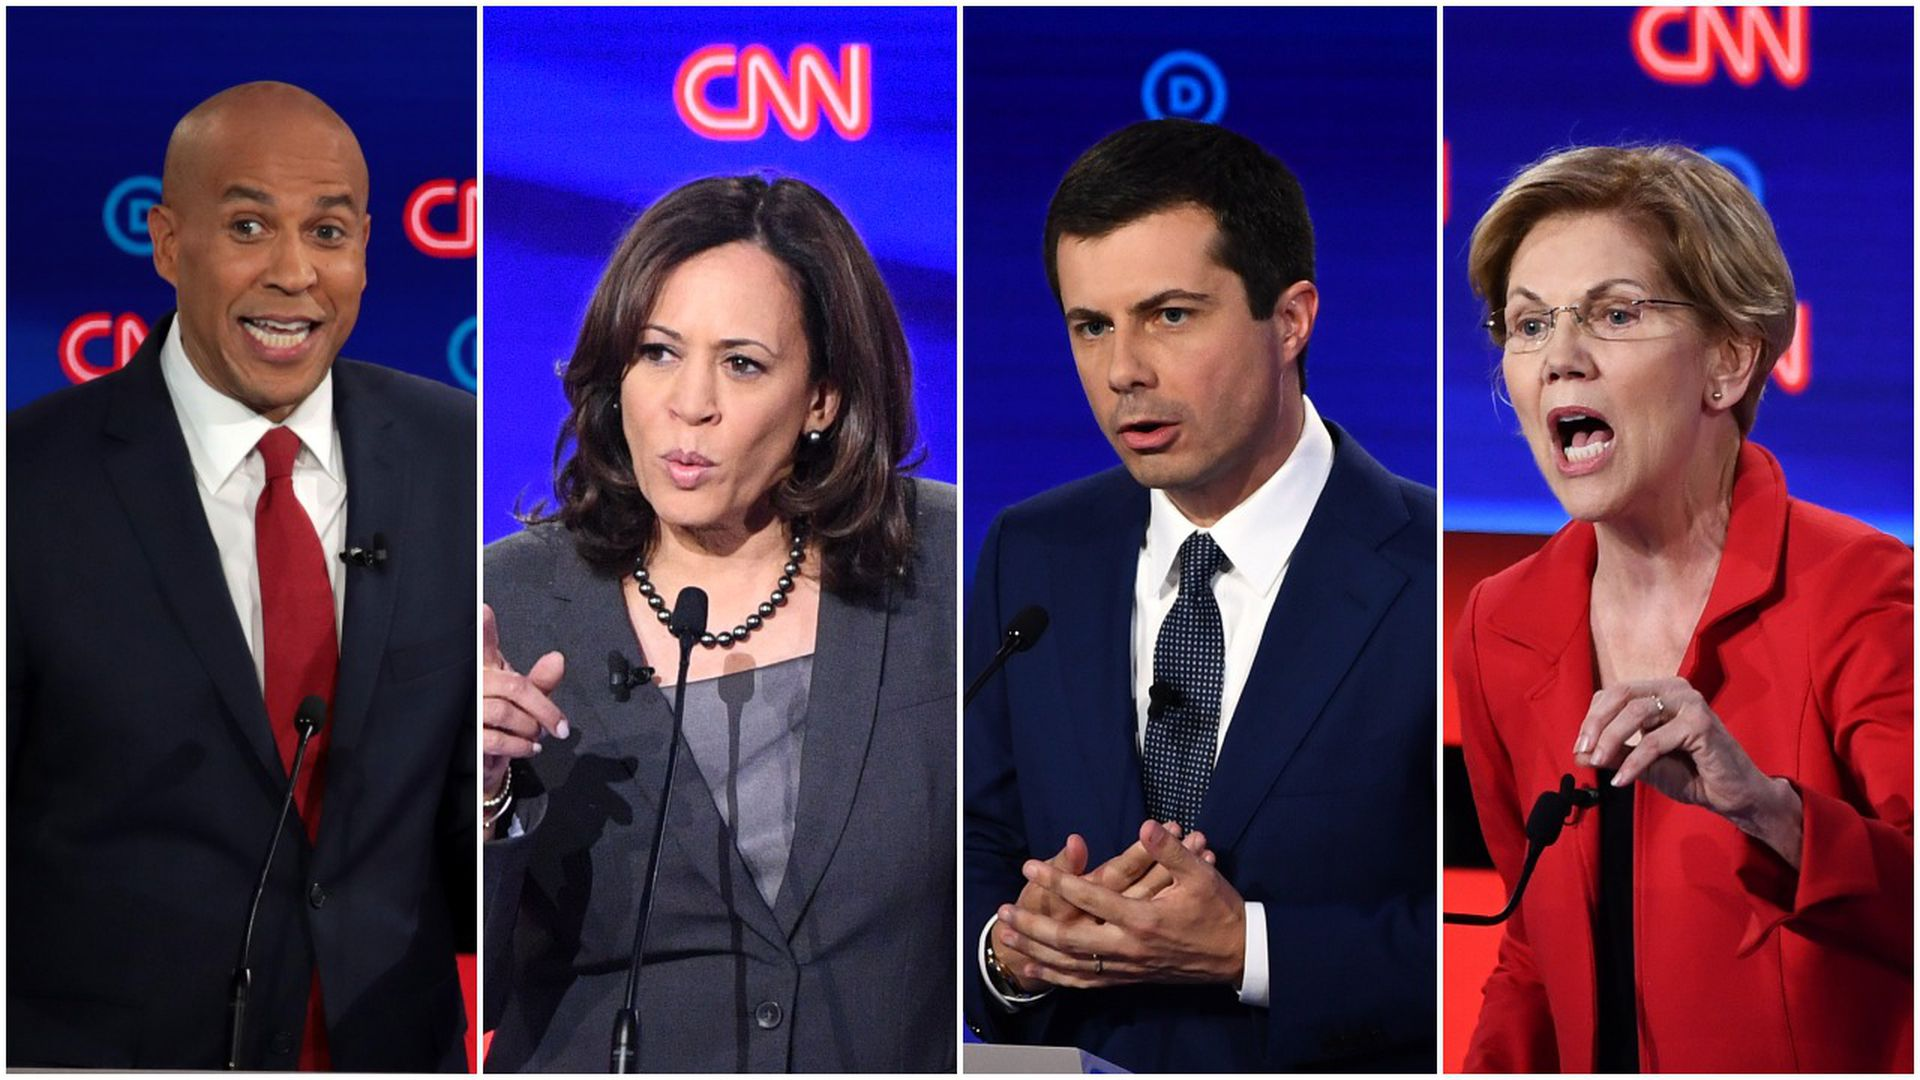 This image is a four-way splitscreen of Booker, Warren, Harris, and Buttigieg.